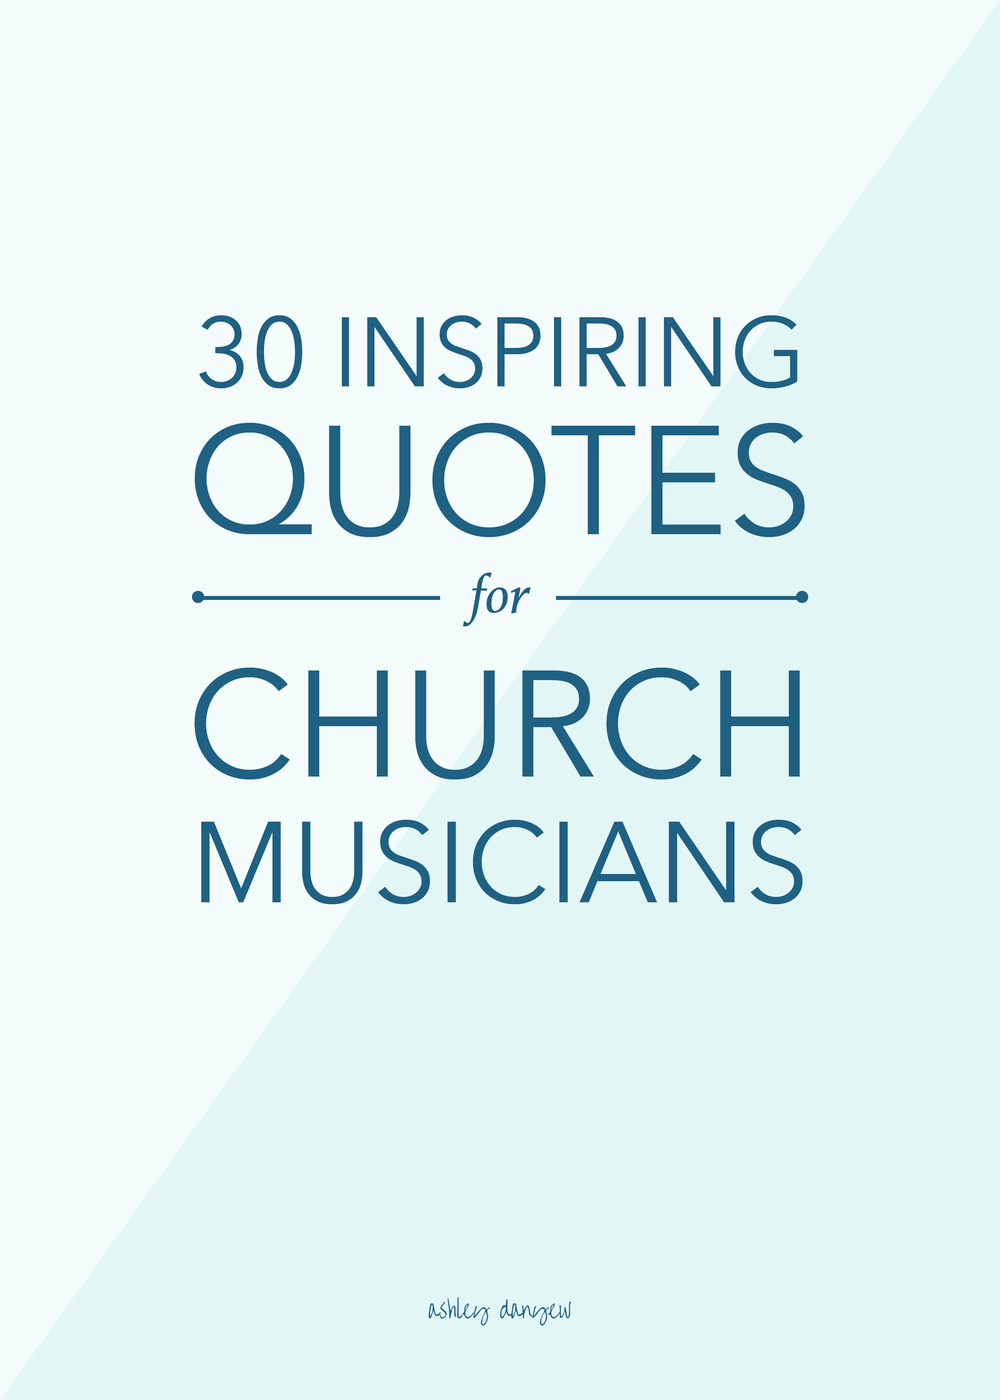 Copy of 30 Inspiring Quotes for Church Musicians